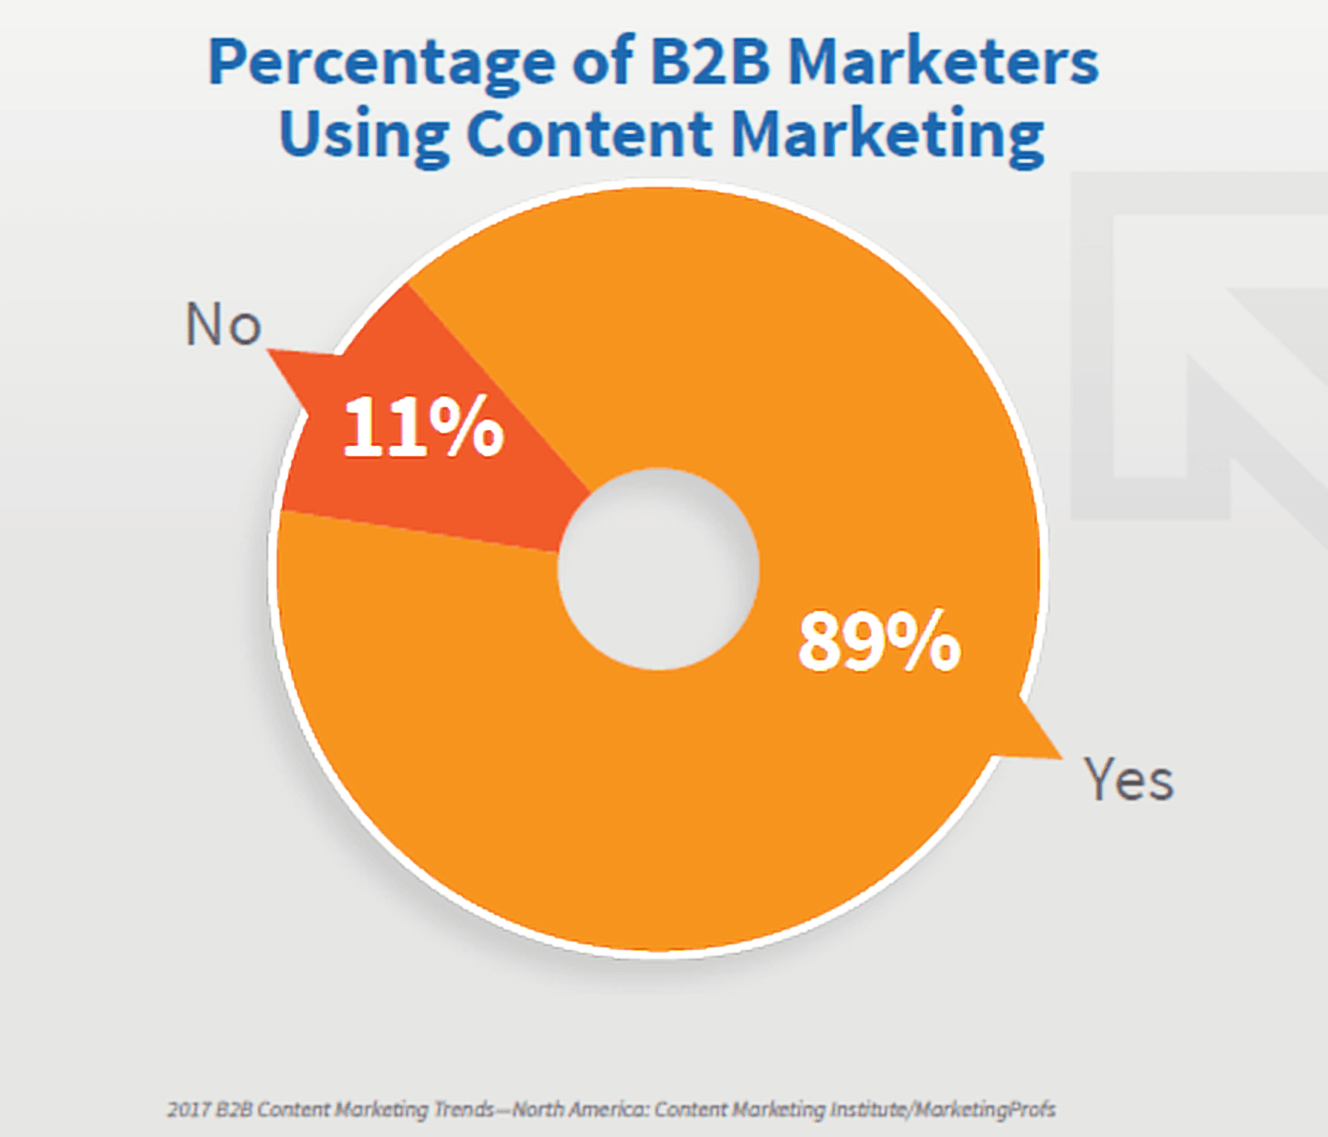 Percentage of B2B Marketers Using Content Marketing